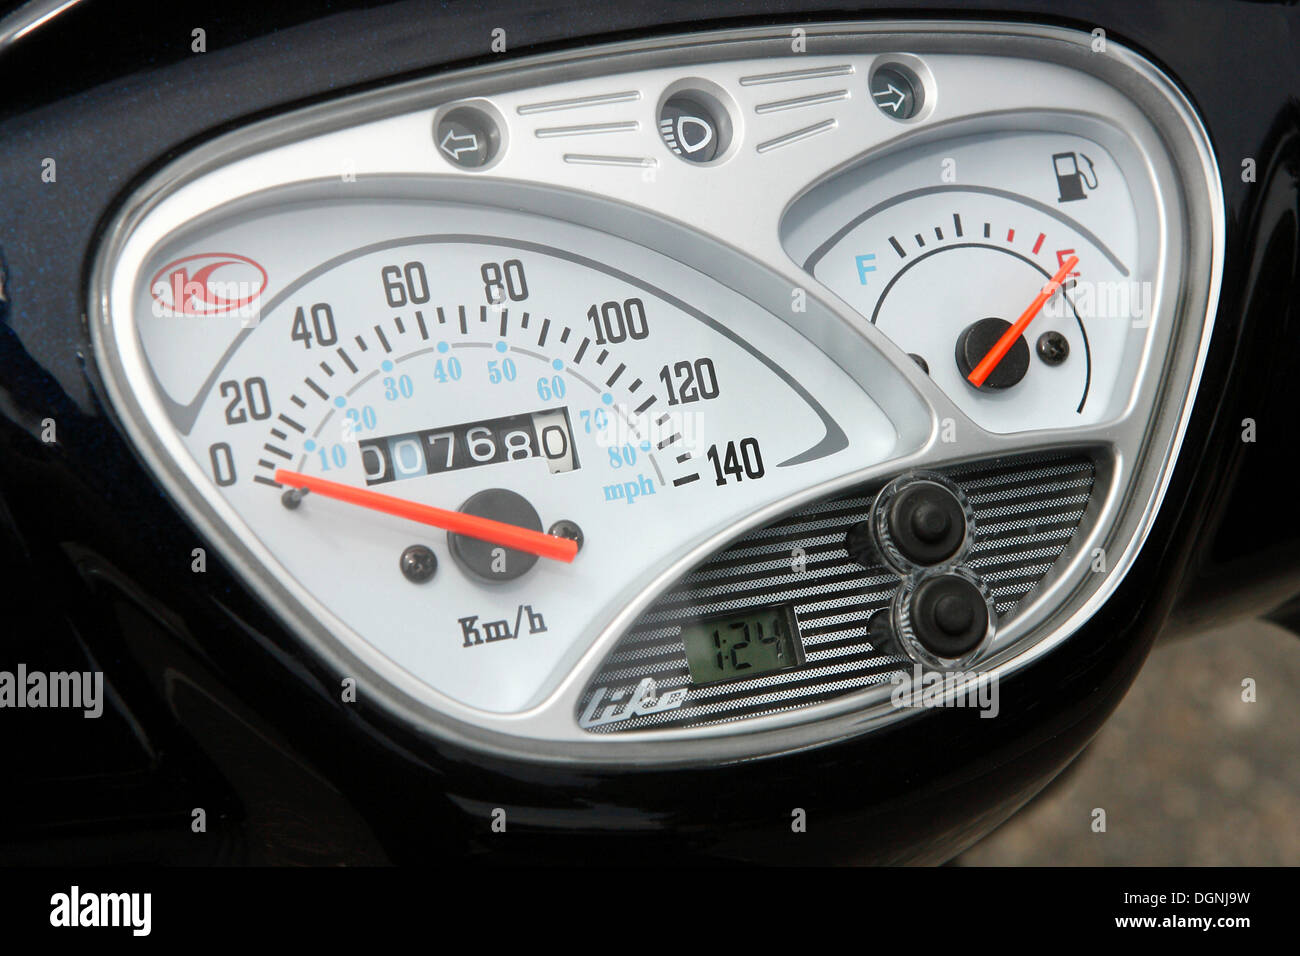 Kymco Lite 125 scooter instruments - Stock Image